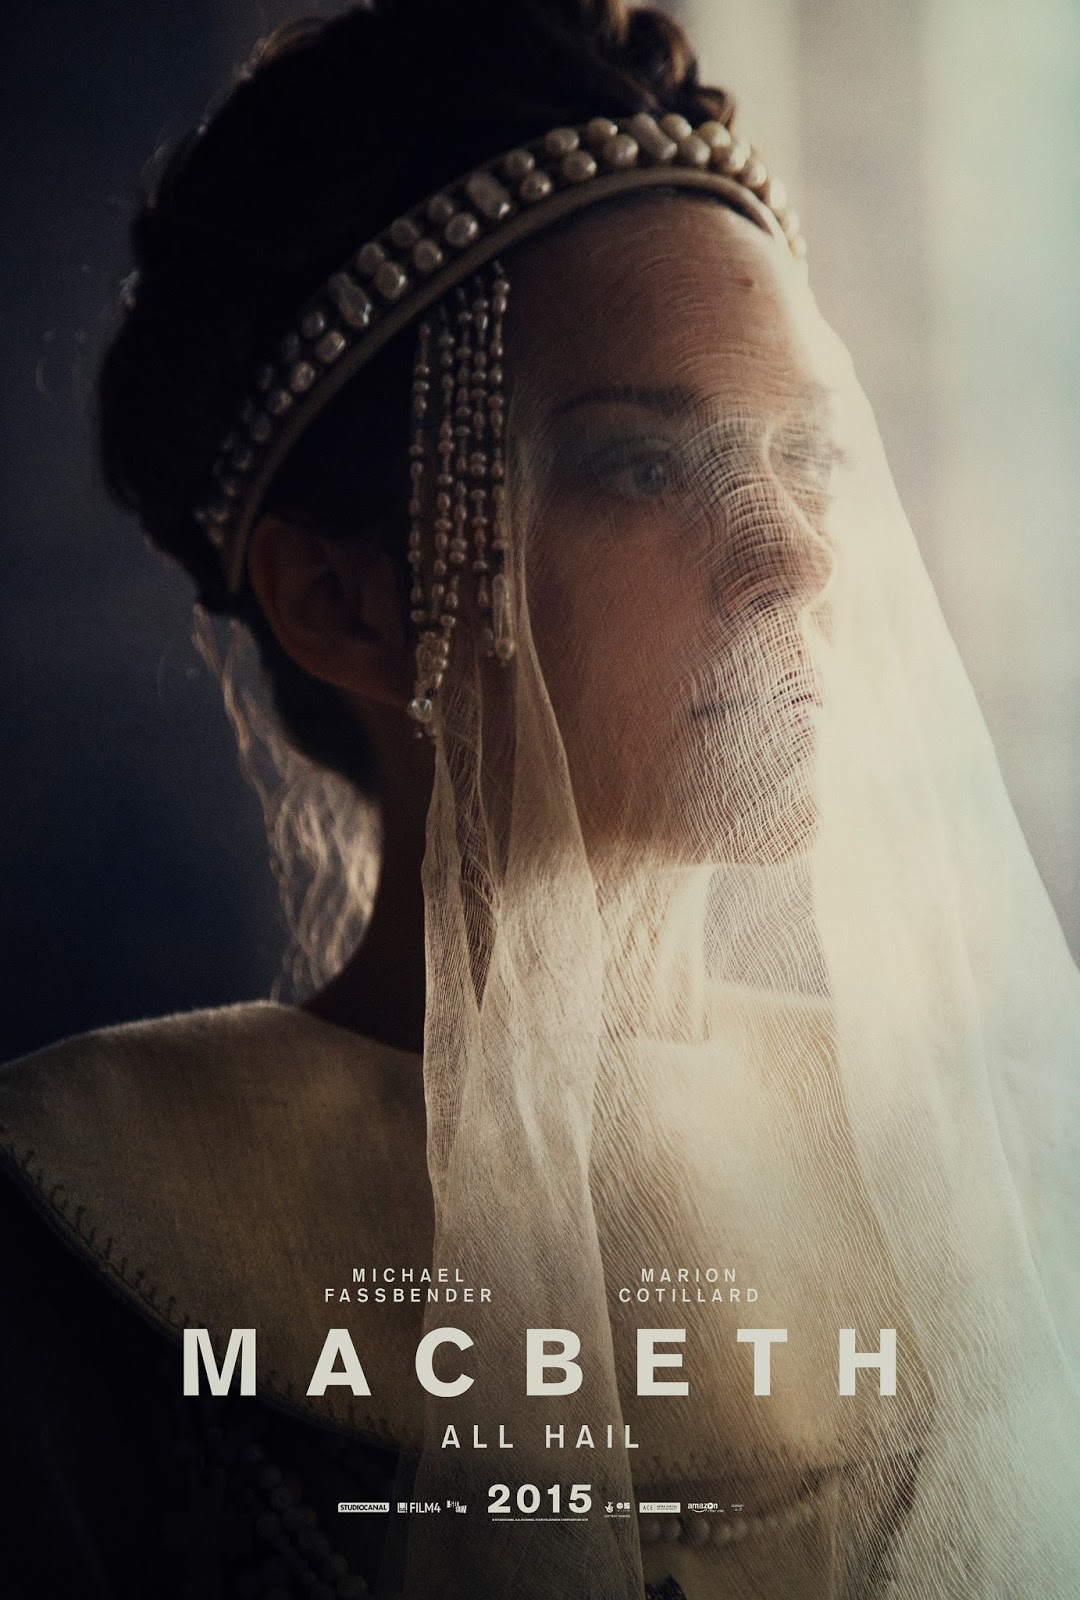 character of lady macbeth 1) in act 1 scene 5, lady macbeth 'unsexes' herself so she can be stronger and get rid of her womanly traits this suggests beforehand she wasn't evil and villainous enough to go through with plotting a murder.